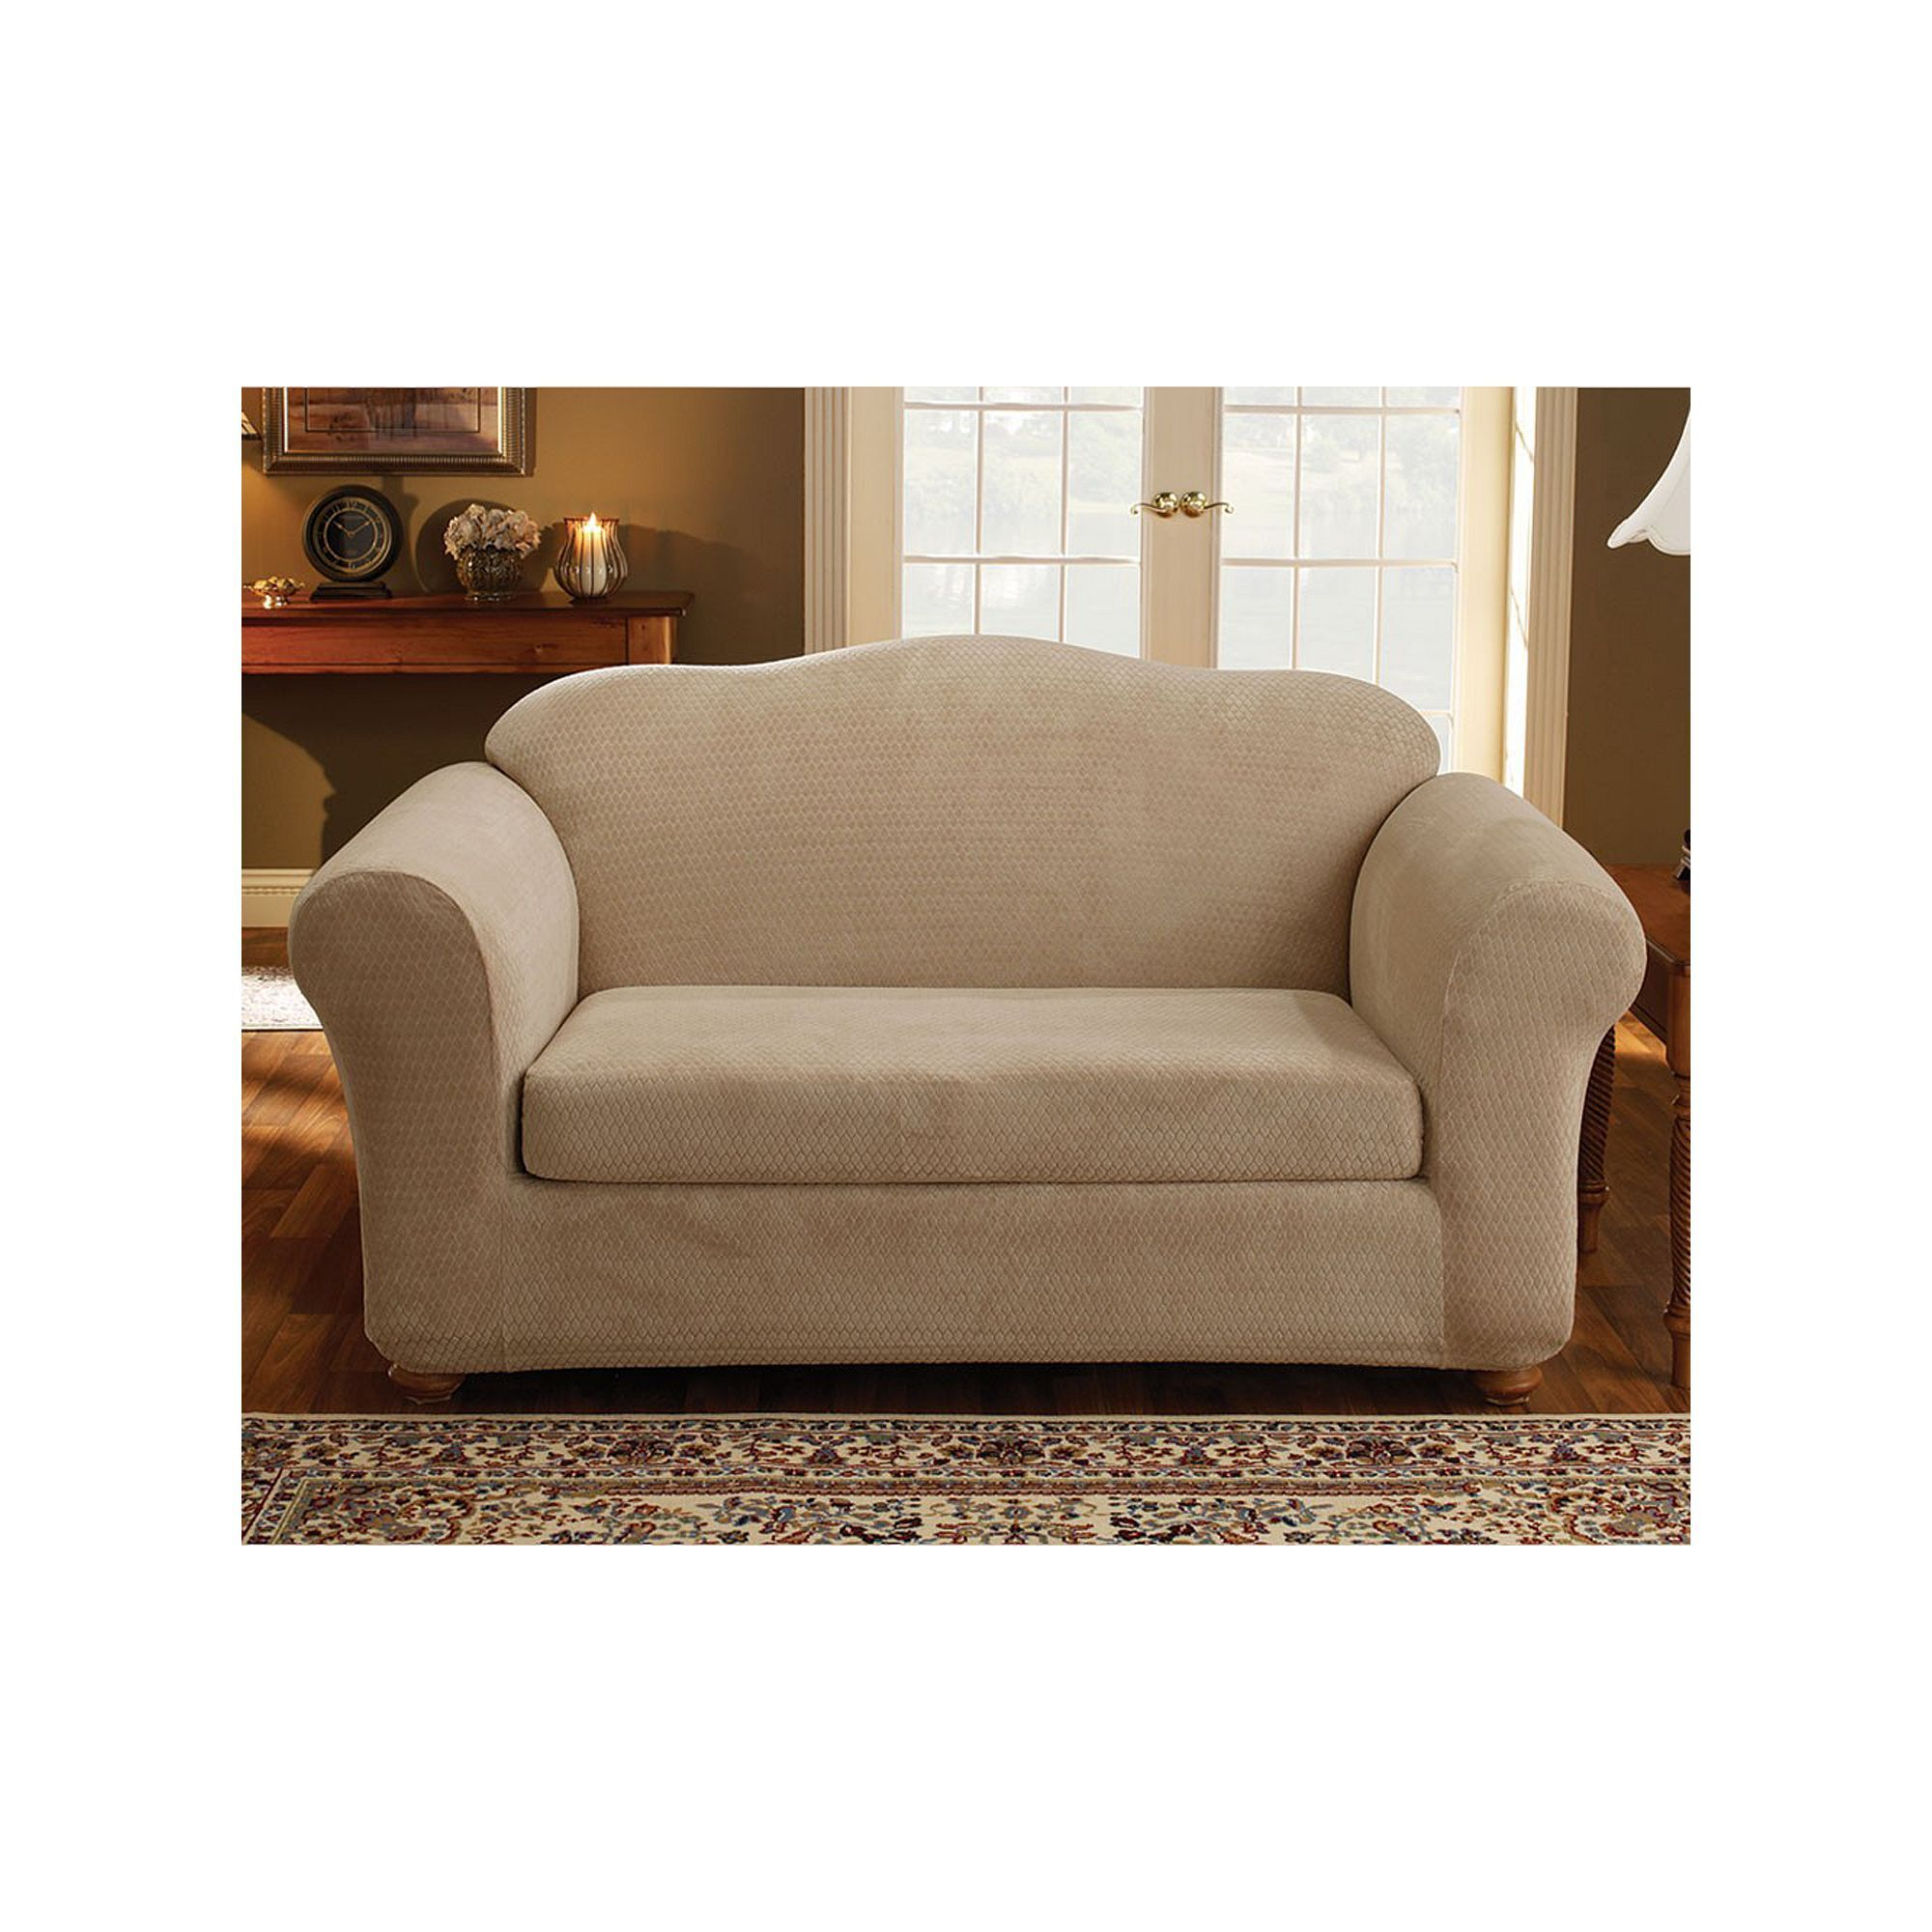 of features in shabby manners unfinished row manner home the henredon loveseat cannery adorable pattern an pin and